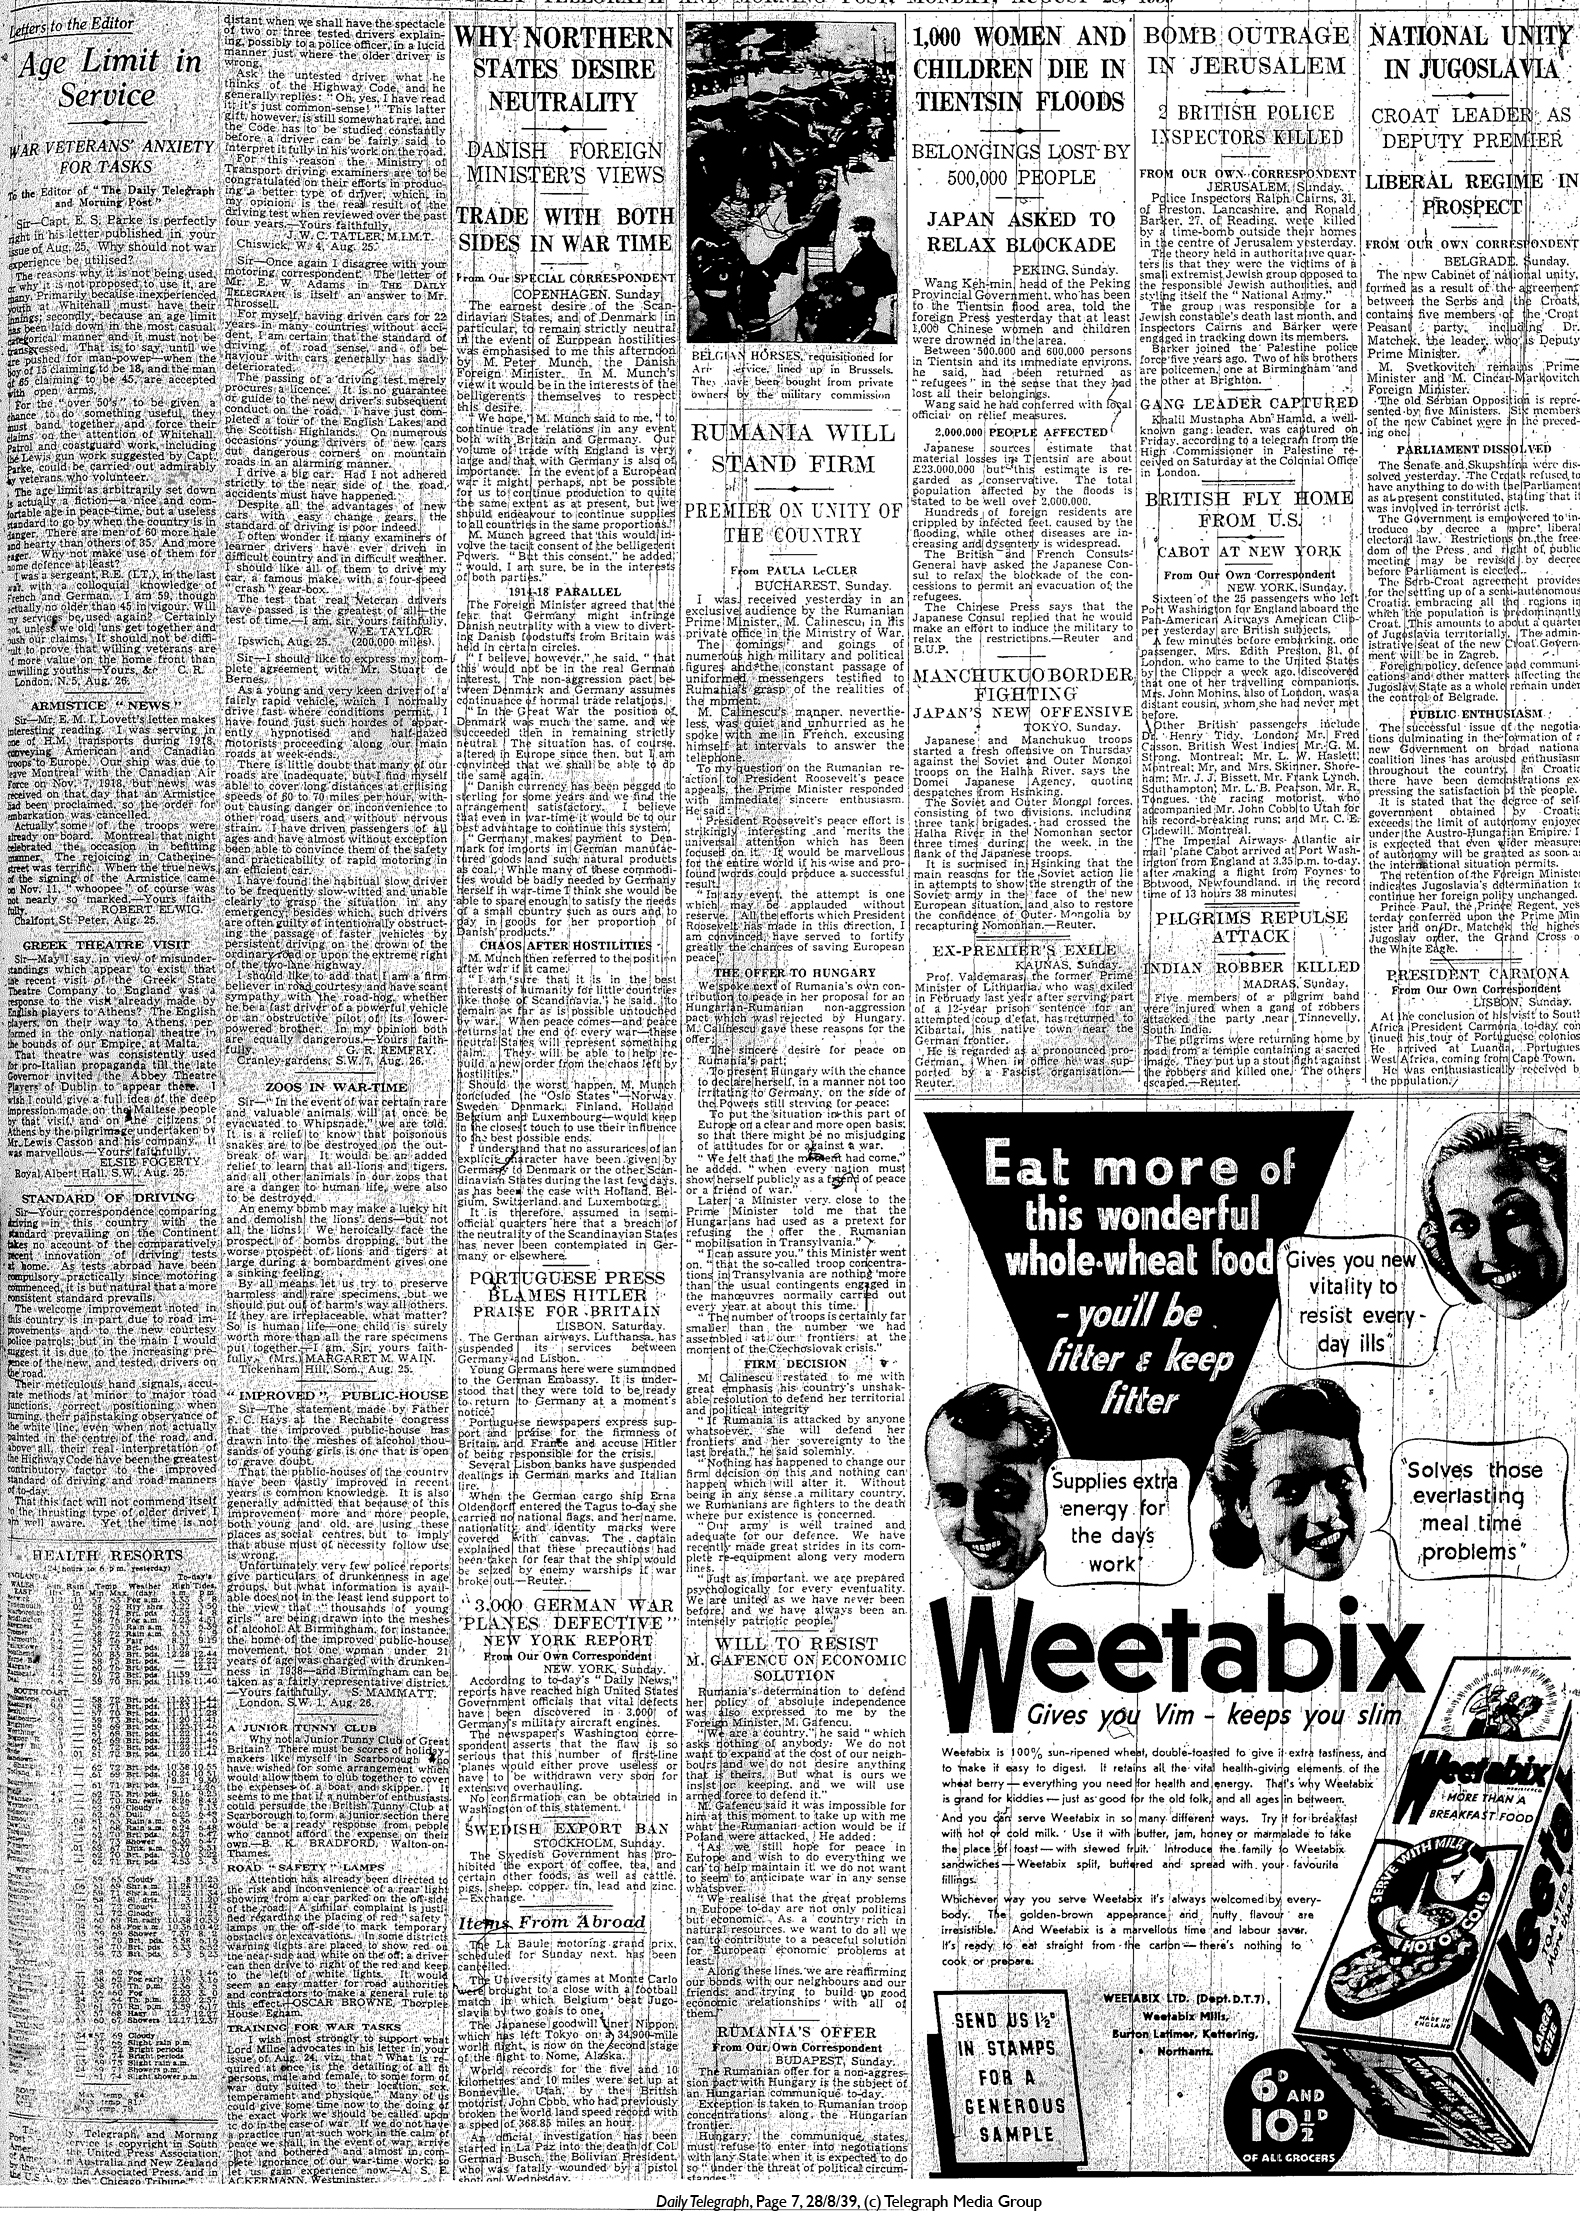 Daily Telegraph 28-8-39 Page 7